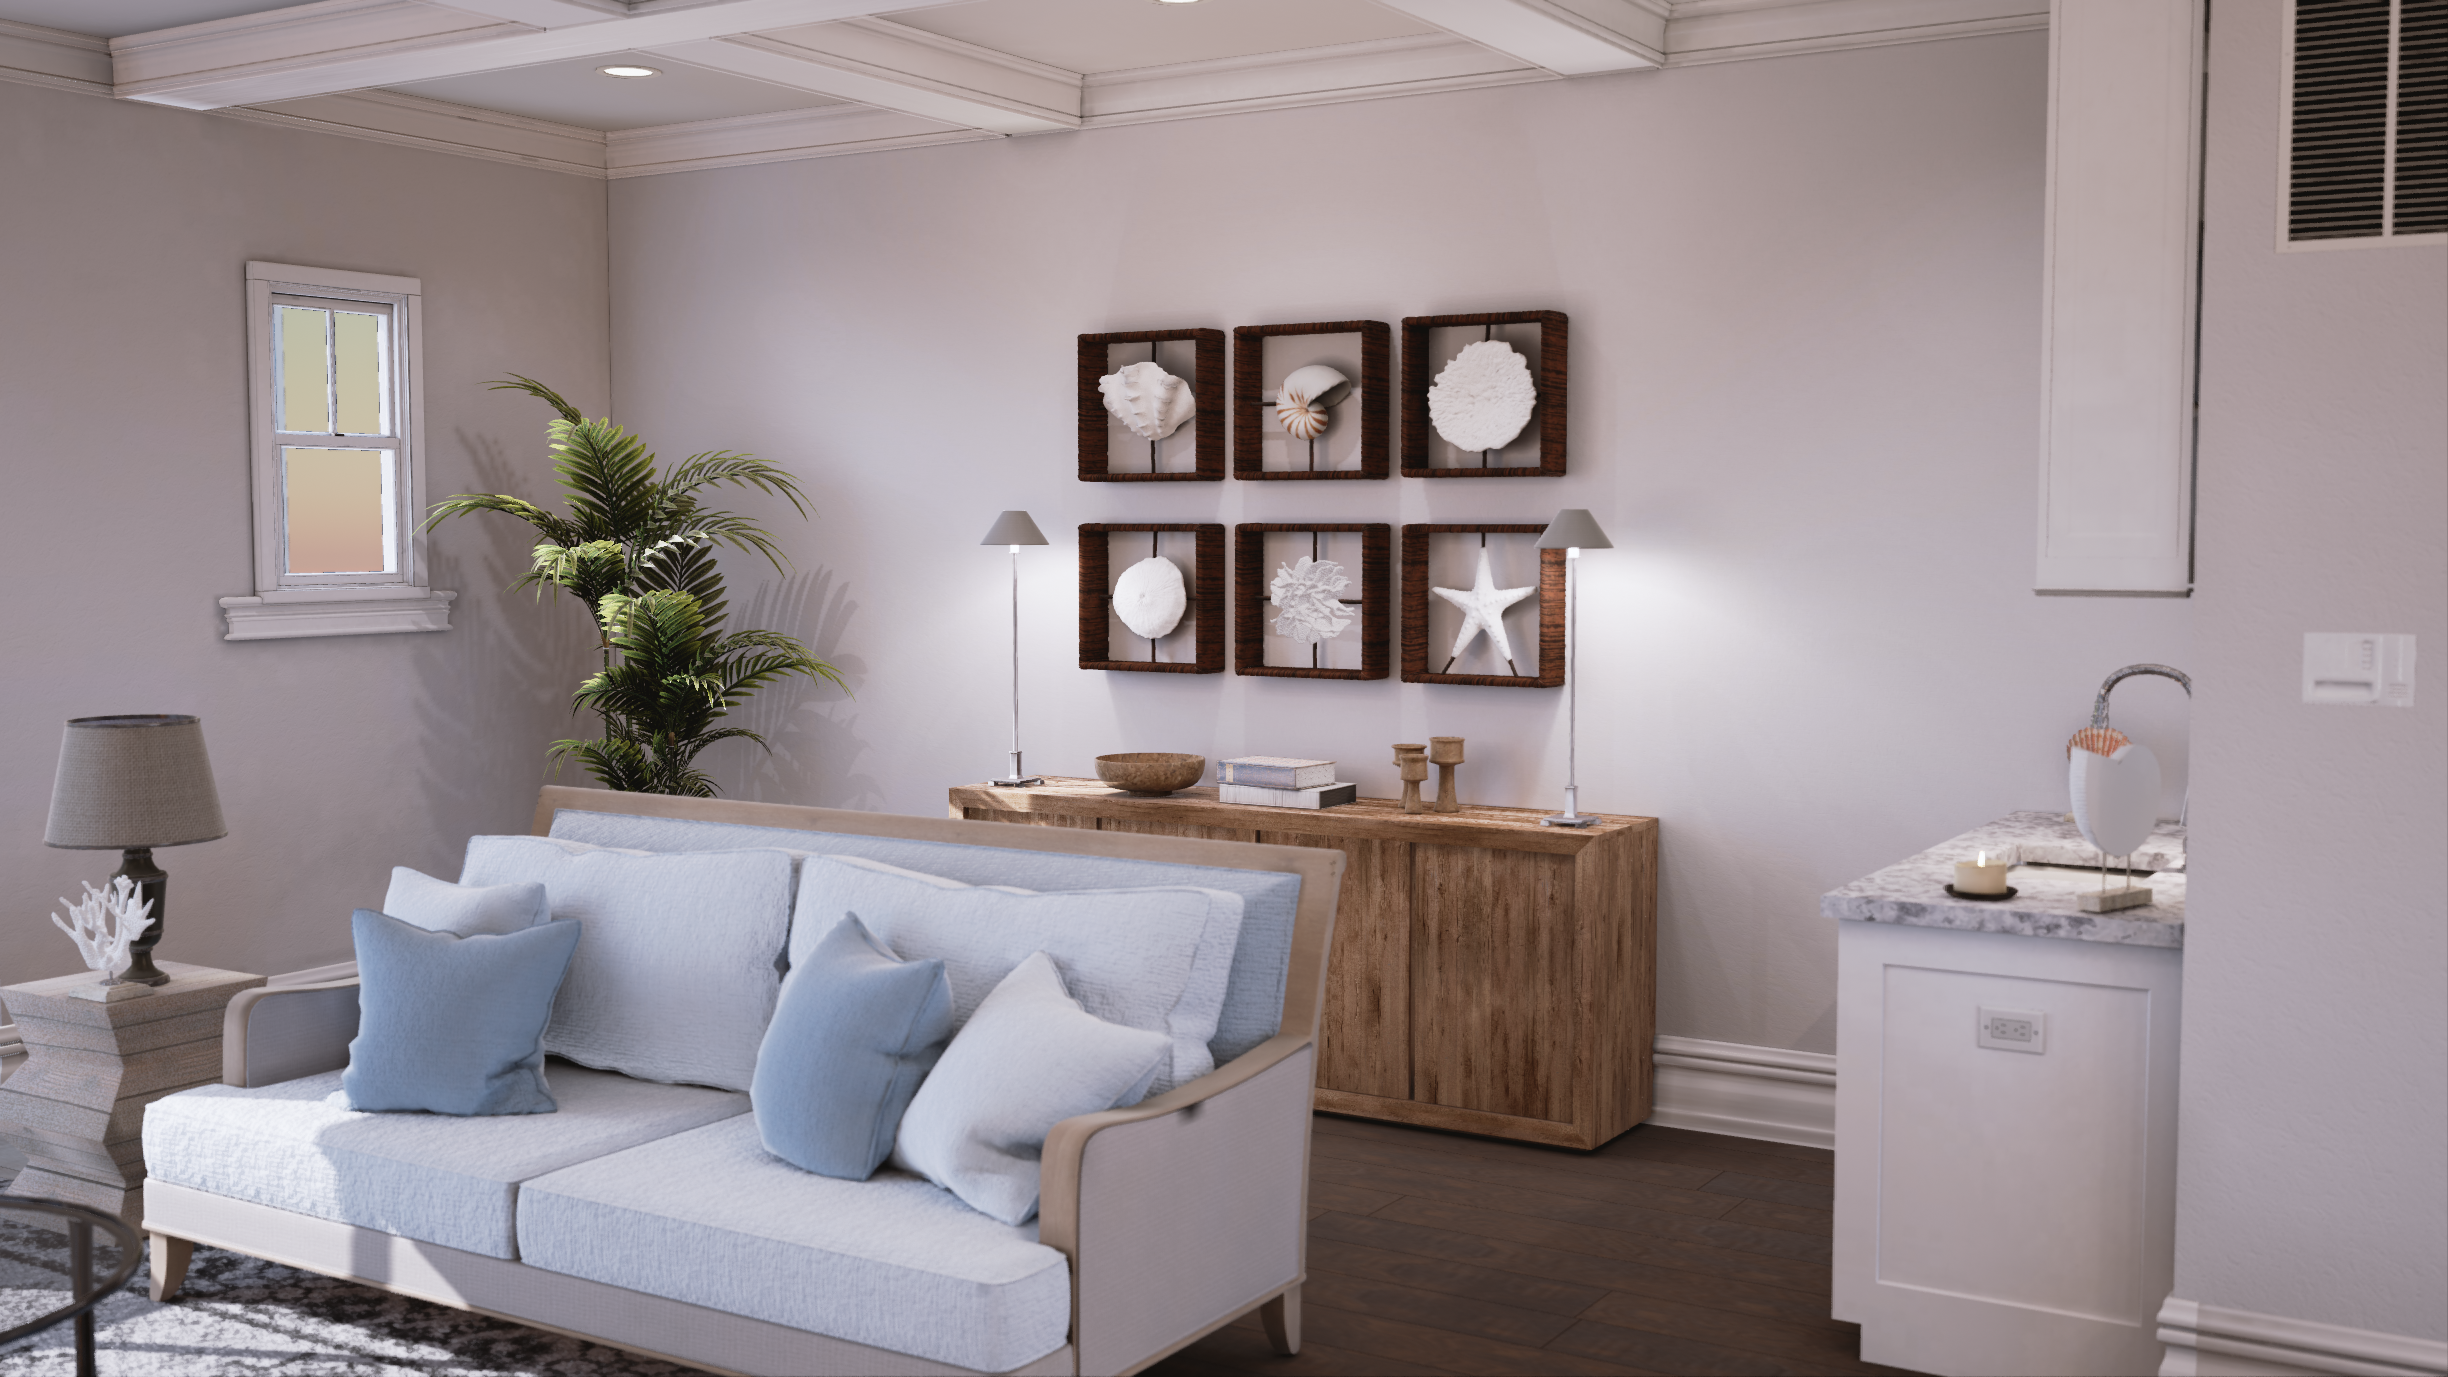 Living room Rendering by Mythic VR